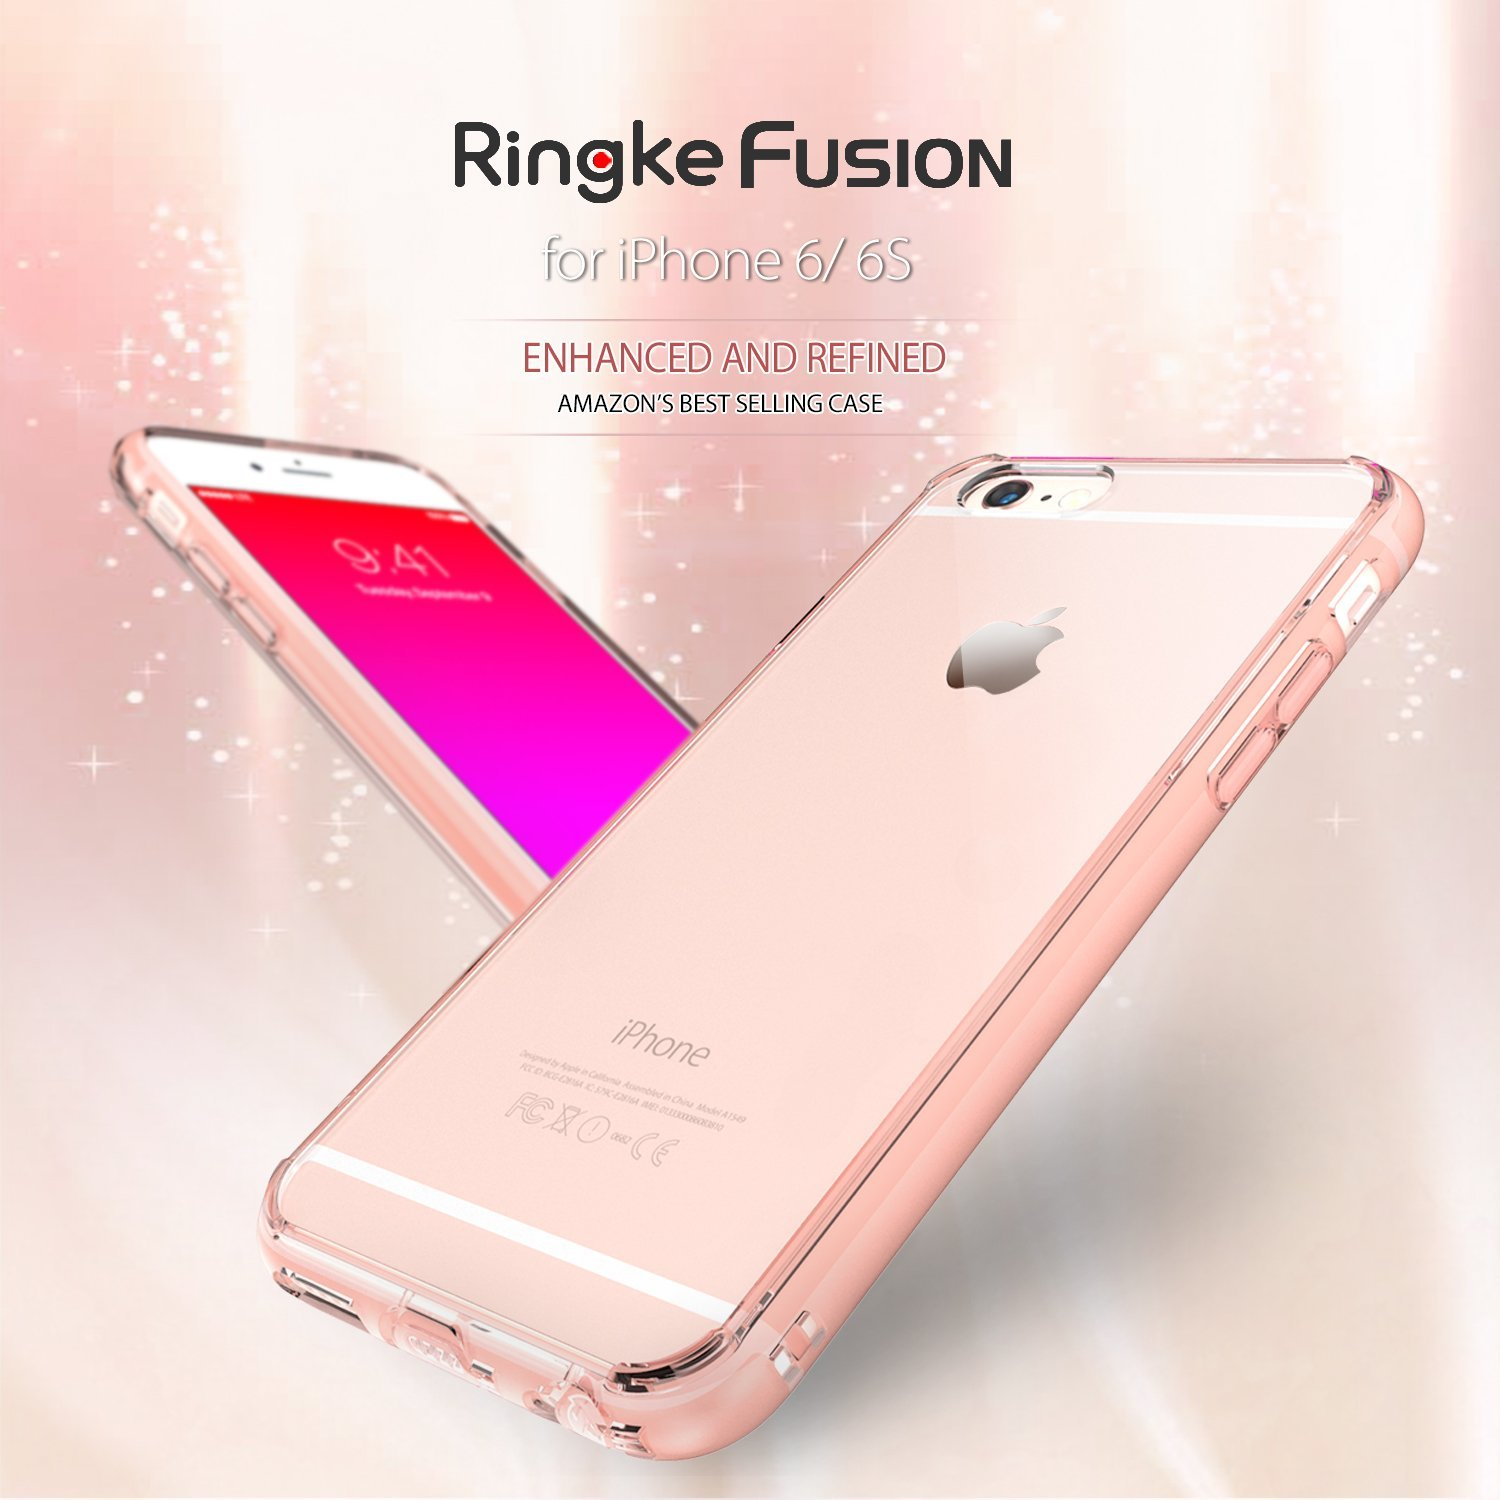 ringke fusion iphone 6S homescreen